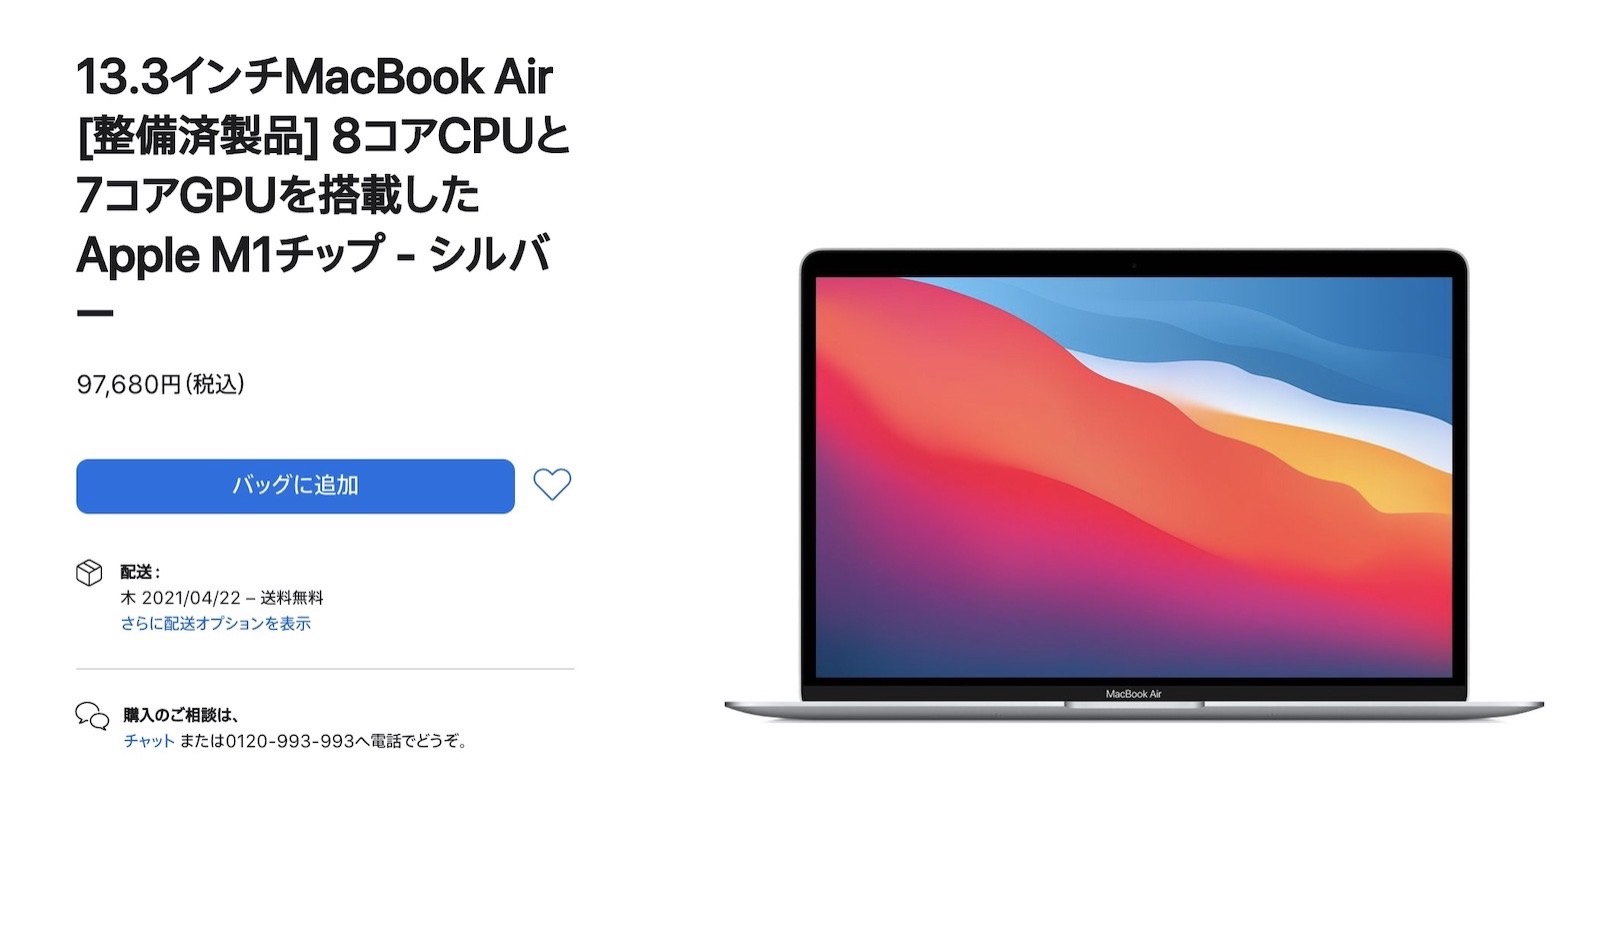 M1 macbook air is below 10k yen